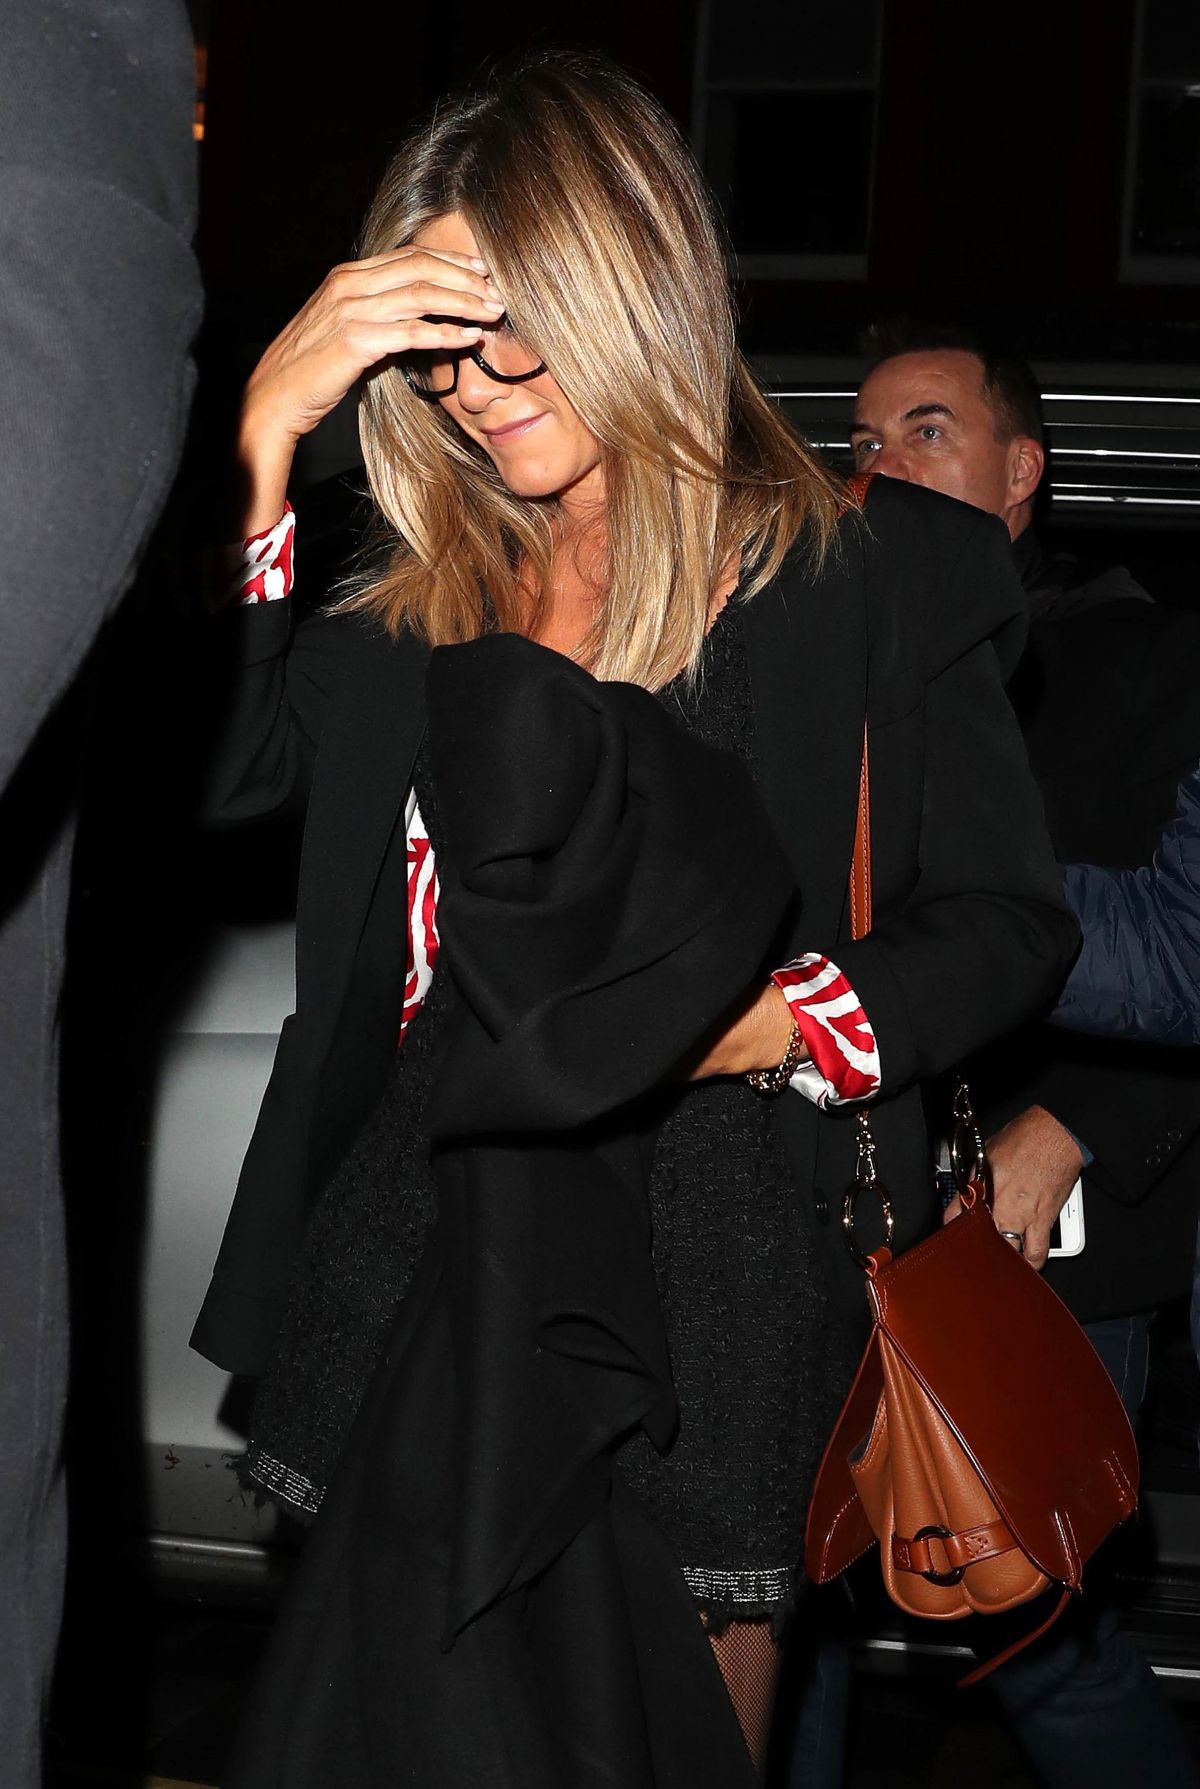 Jennifer Aniston At the Chiltern Firehouse in London   jennifer-aniston-at-the-chiltern-firehouse-in-london_3